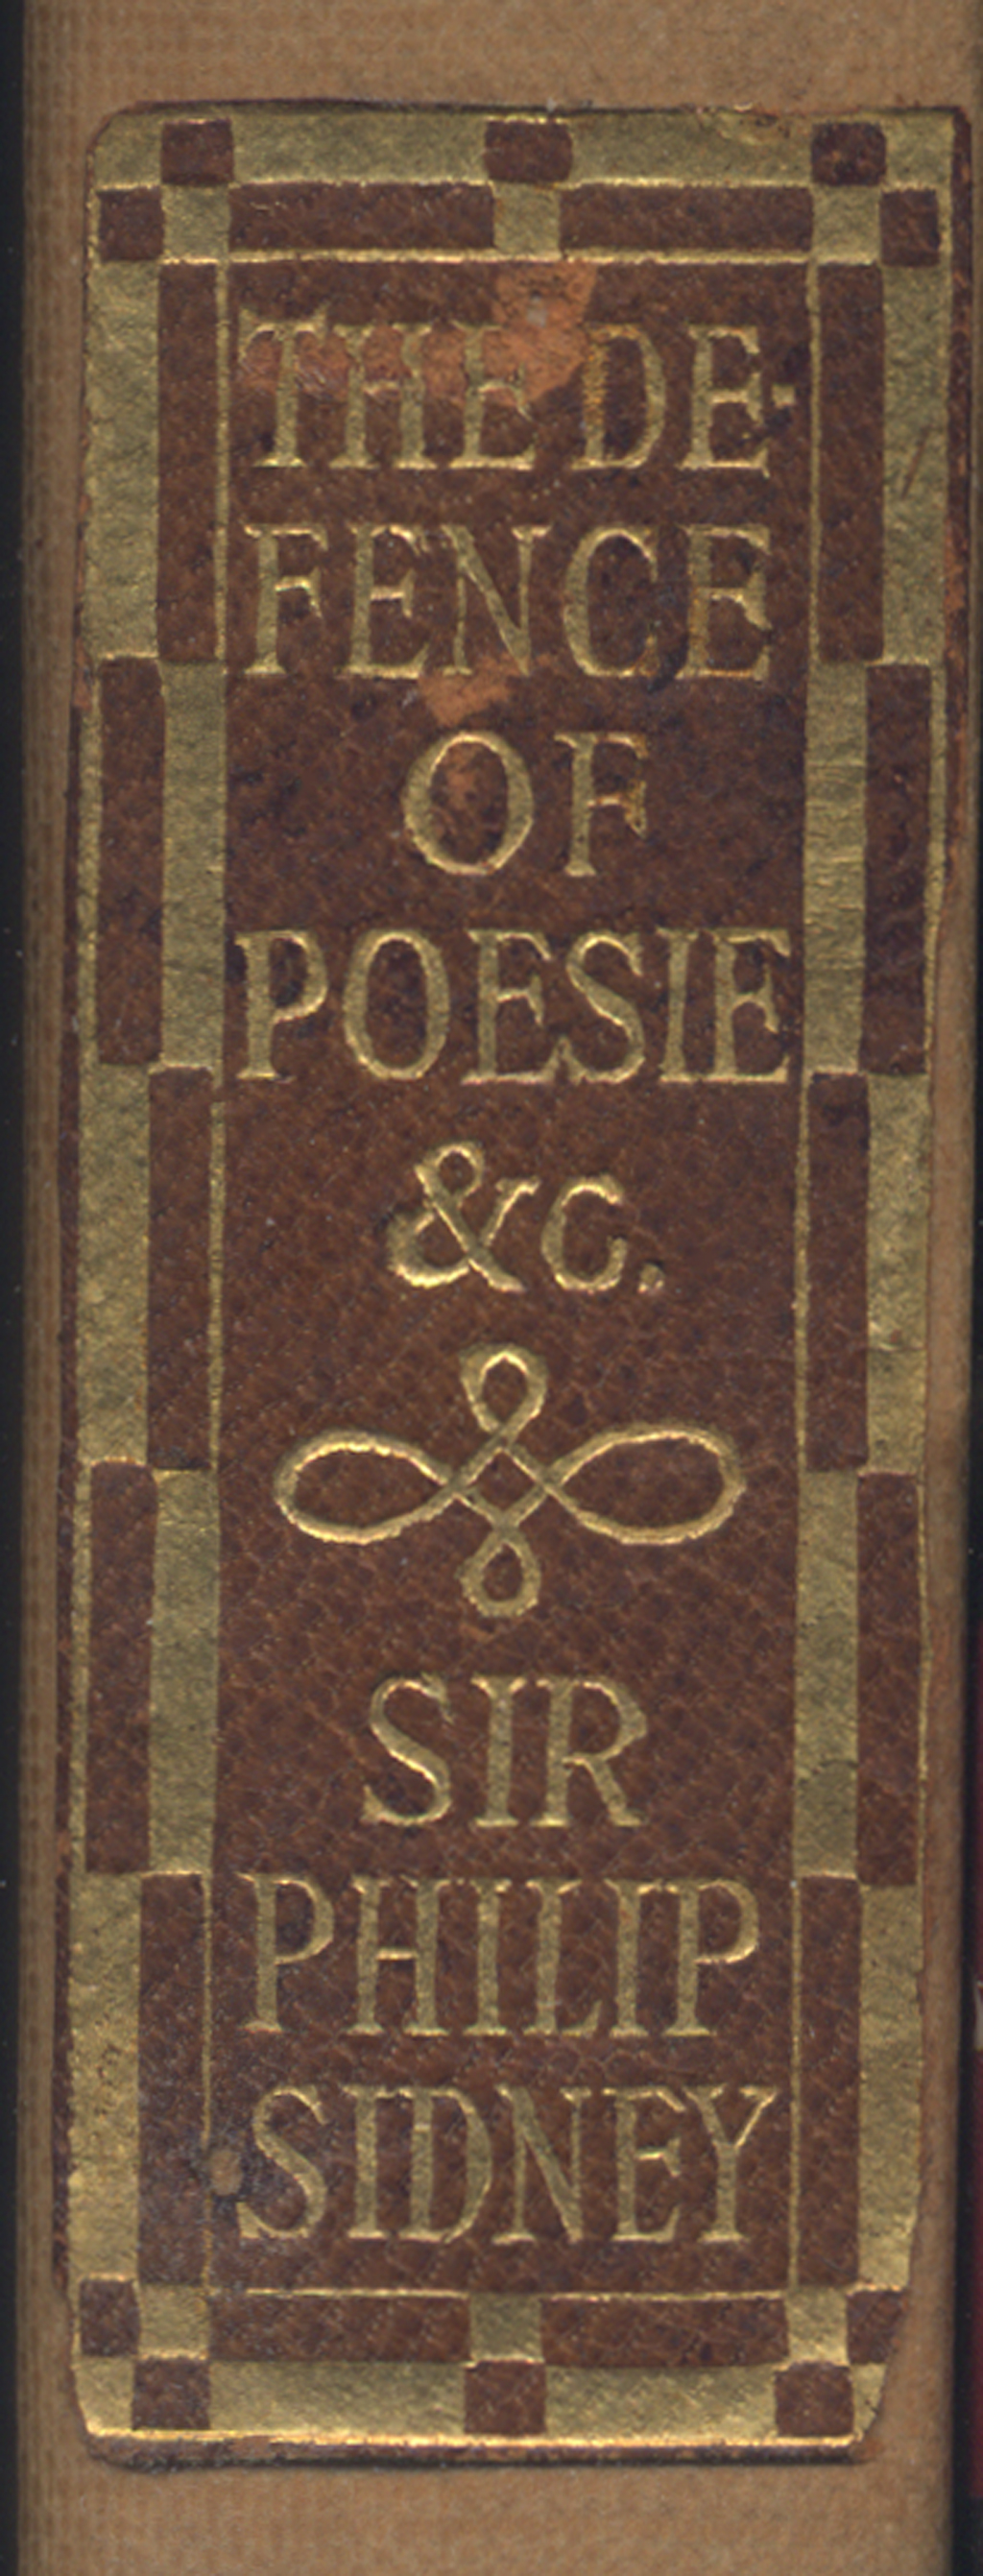 Label for spine of The Defence of Poesie, etc. by Sir Philip Sidney (Boston: The Merrymount Press, 1908). Lettering by W.A. Dwiggins.